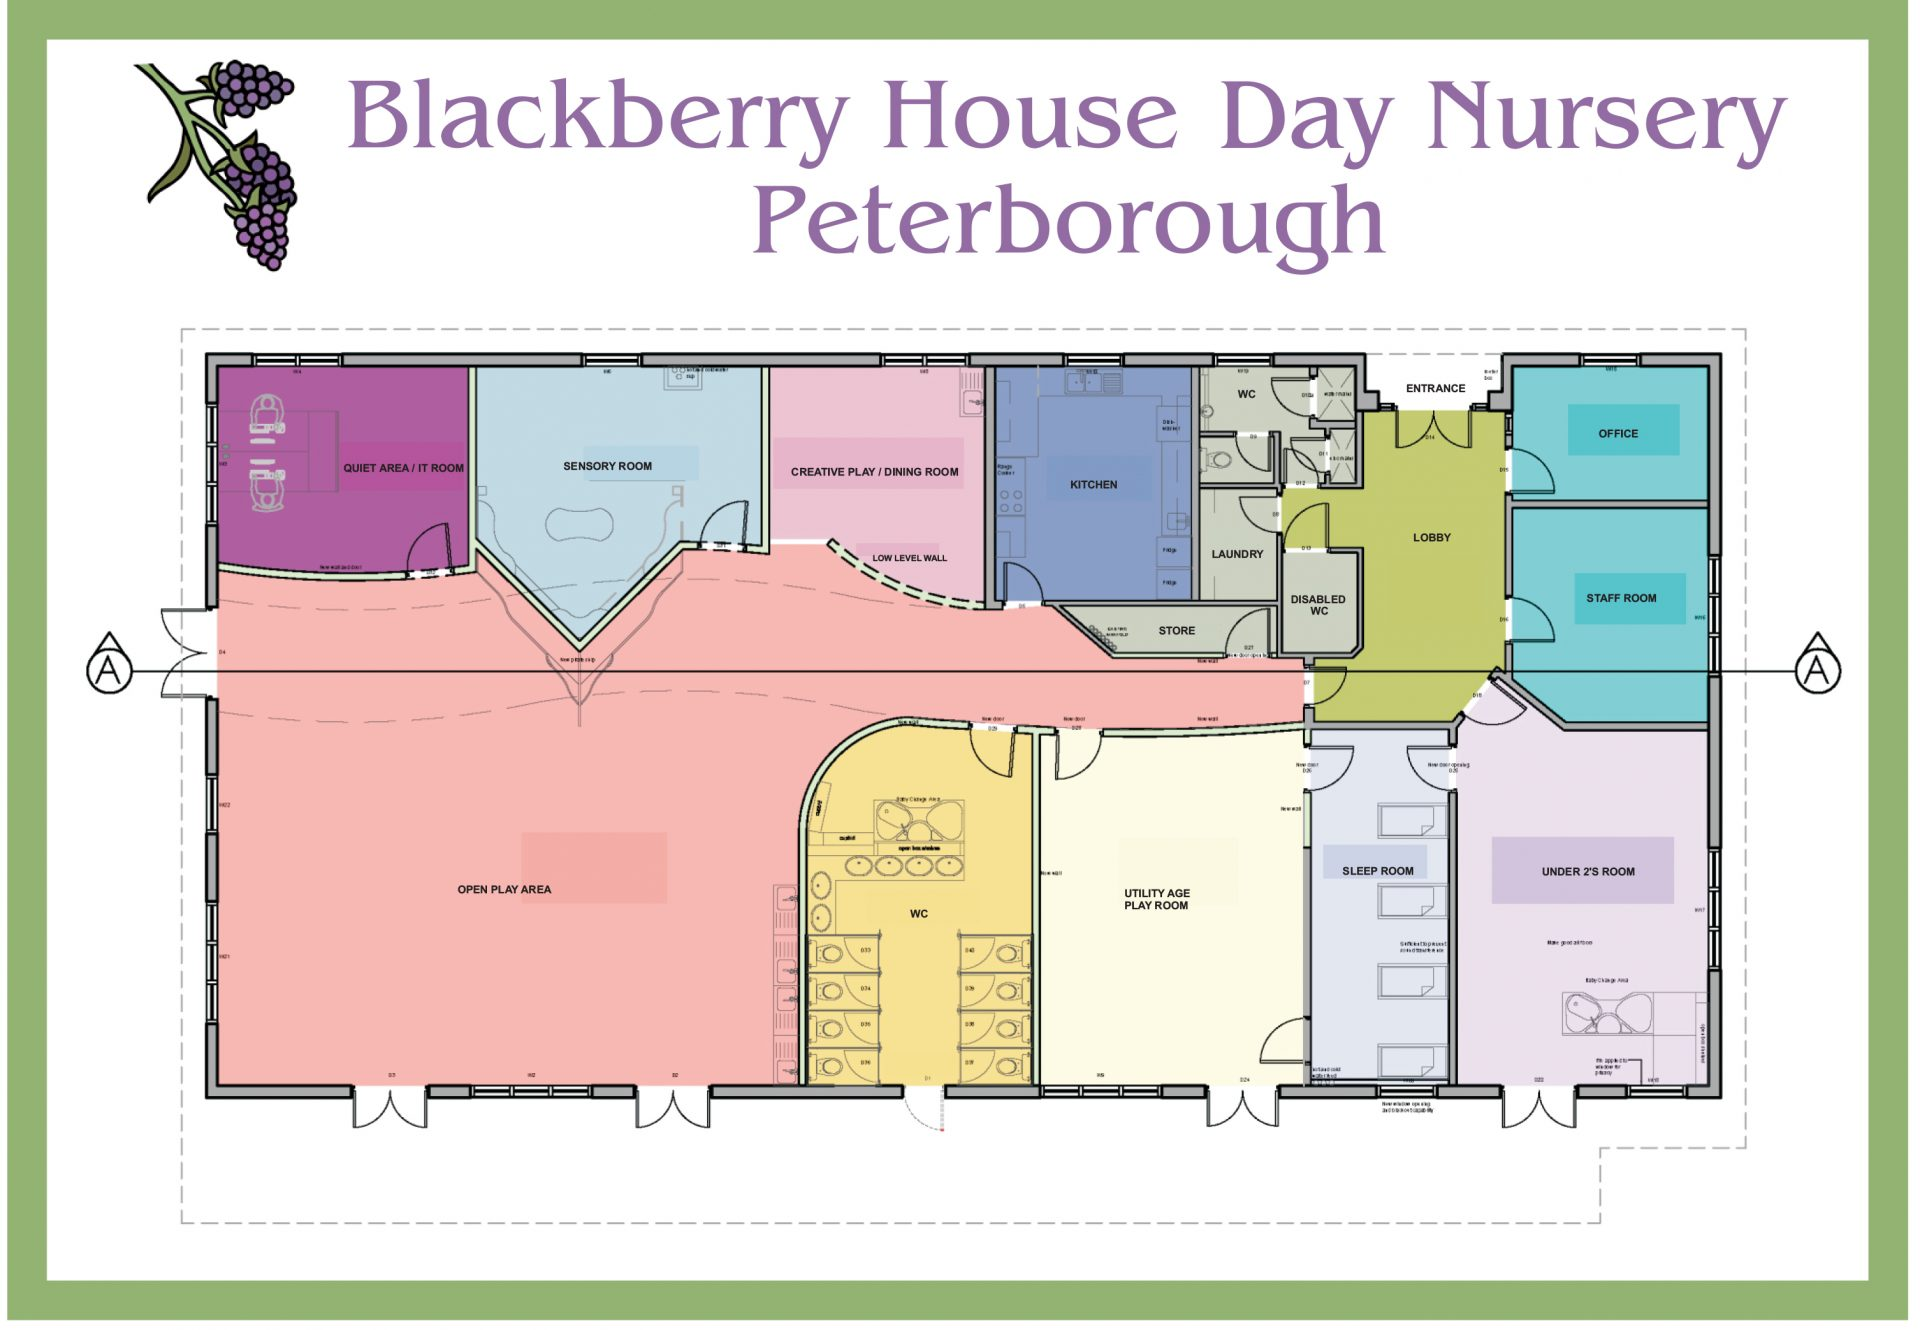 Have A Look Inside Our New Nursery For Yourself Blackberry House Day Nursery